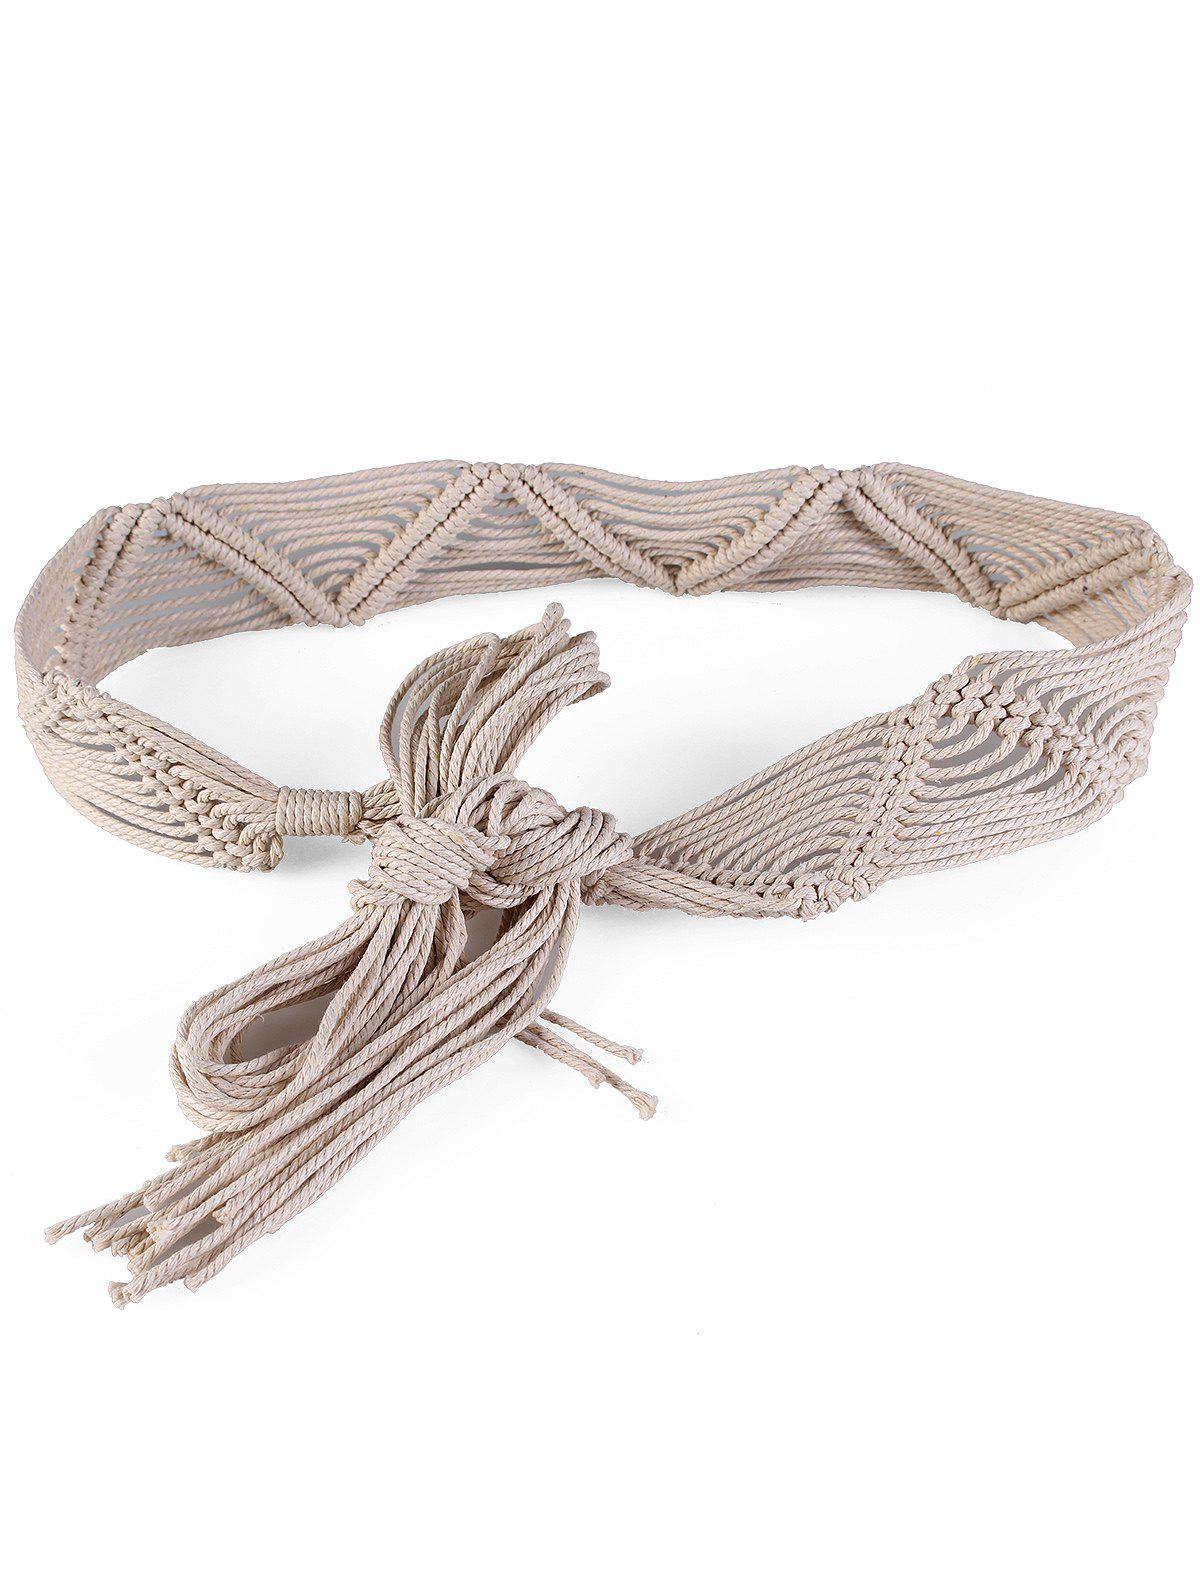 Cheap Bohemian Braided Rope Adjustable Dress Belt